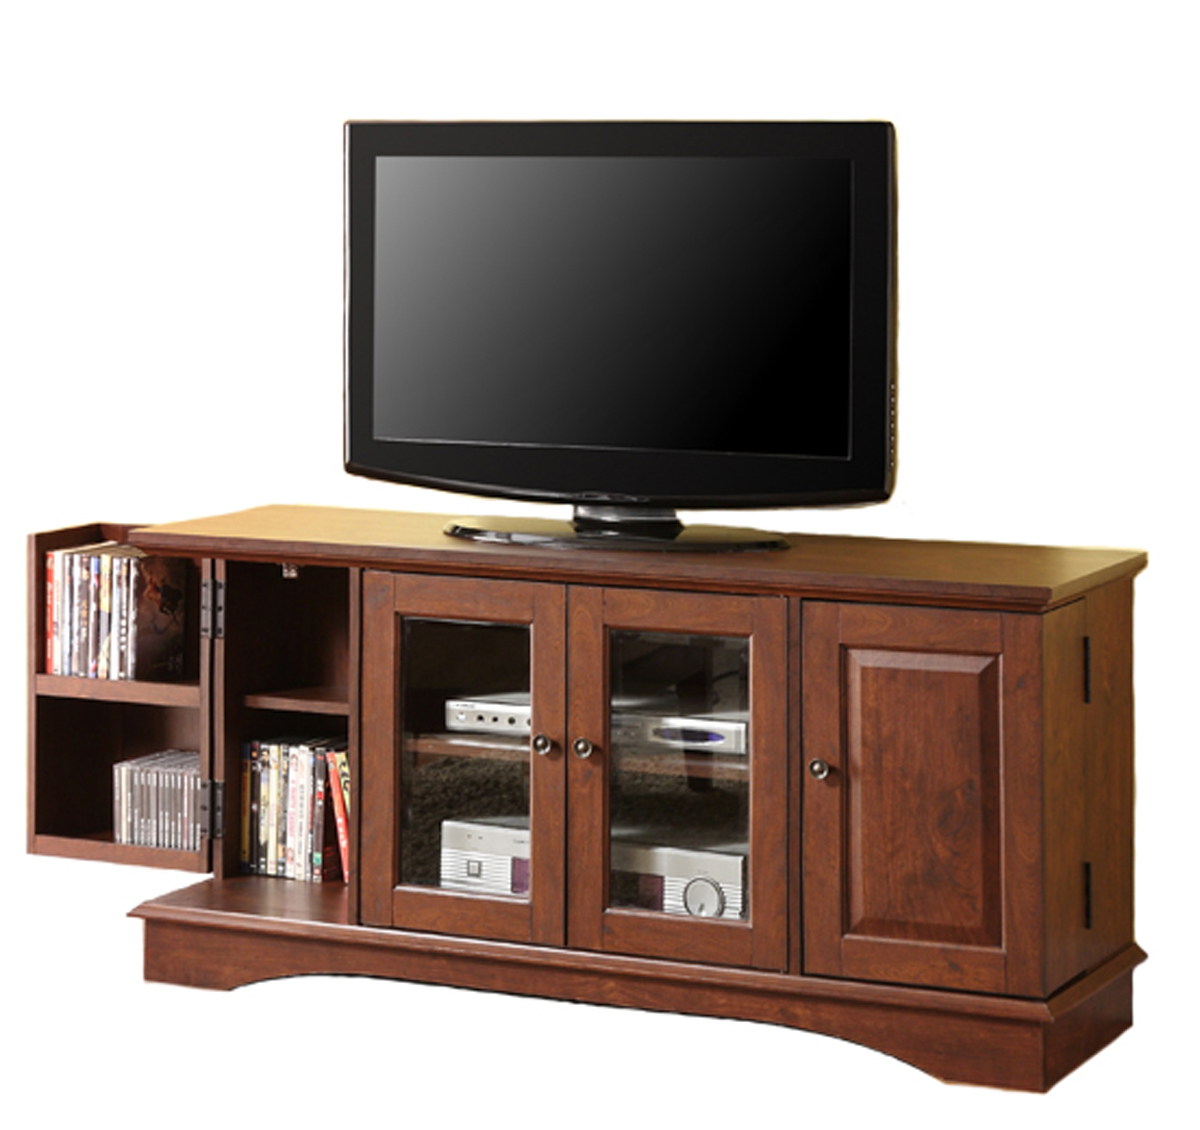 52 inch wood tv stand with media storage by walker edison. Black Bedroom Furniture Sets. Home Design Ideas